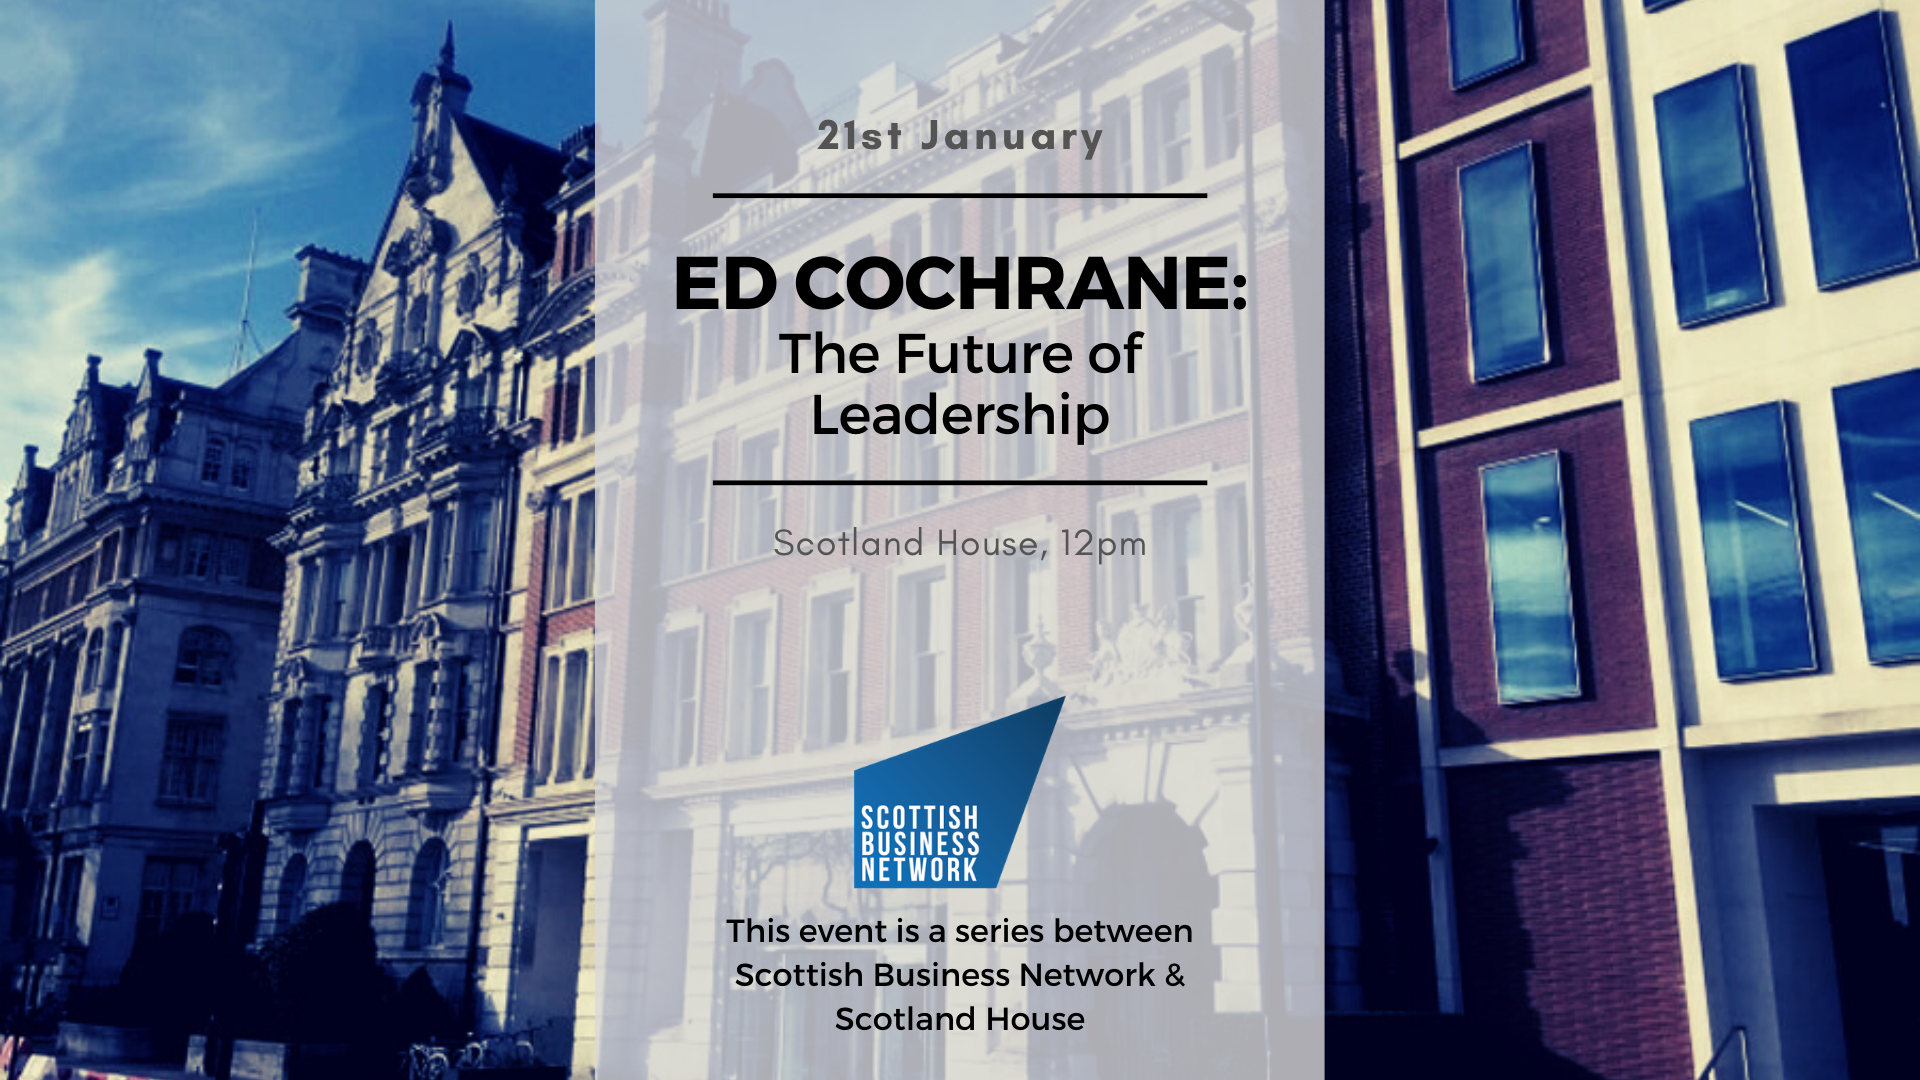 Scottish Business Network: The Future of Leadership, with Ed Cochrane of YSC